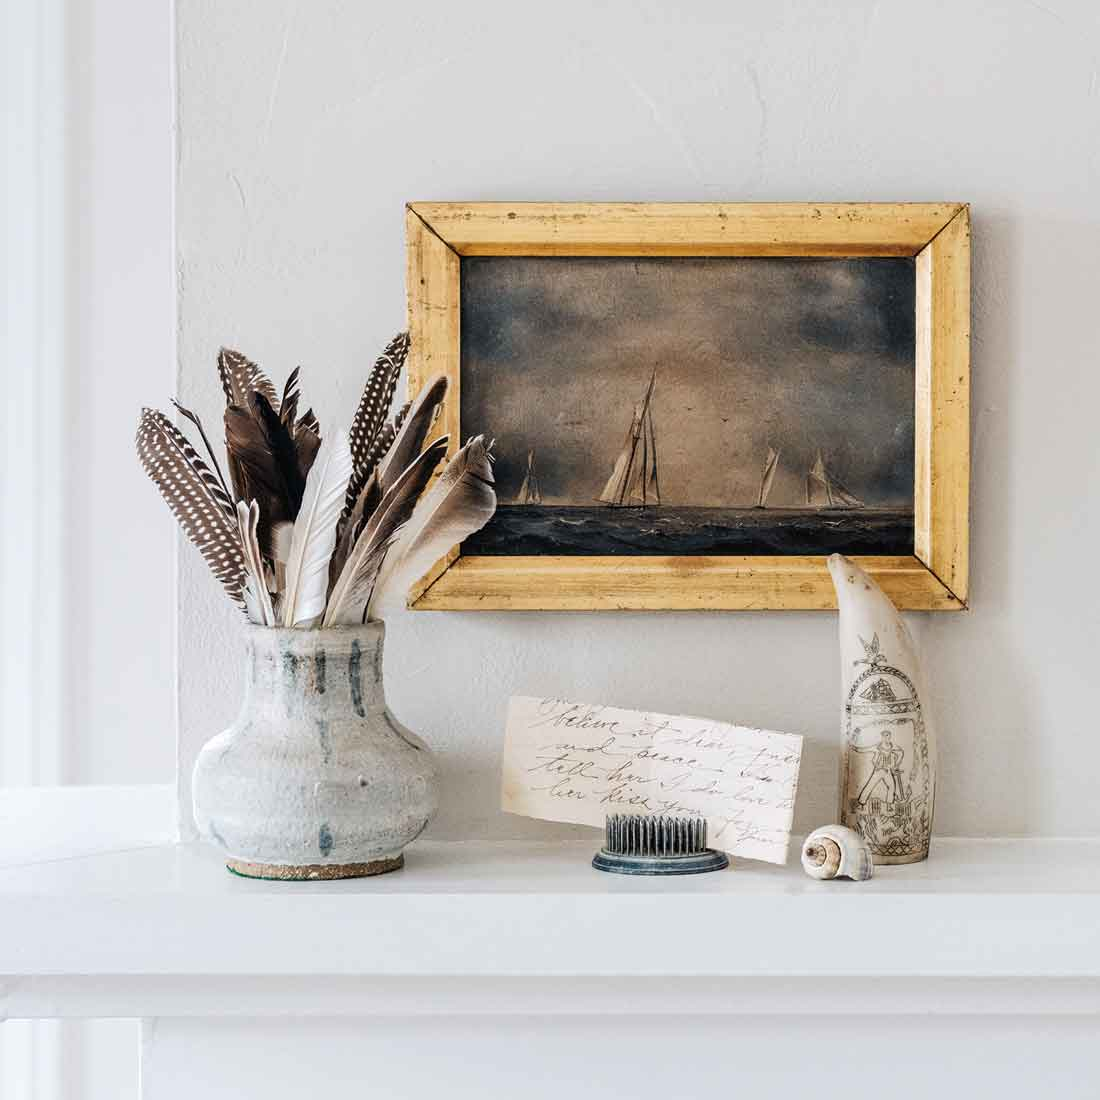 Donovan typically starts with an antique seascape, which she often reframes. A jar of crafts store feathers elongates the tableau, while a scrimshaw replica and letter in an antique flower frog create balance.